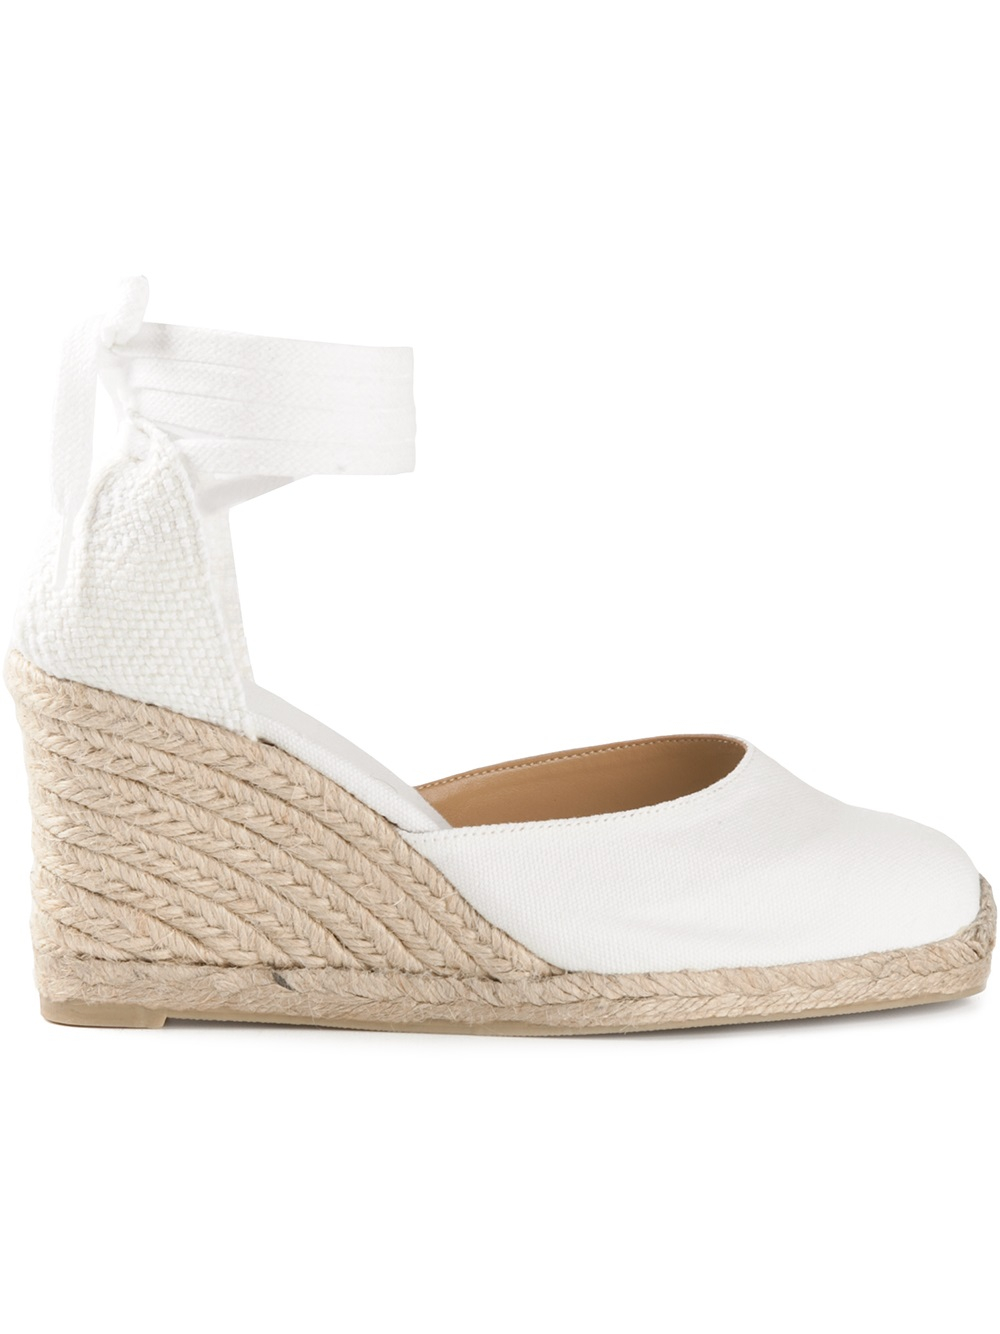 Womens White Wedge Shoes